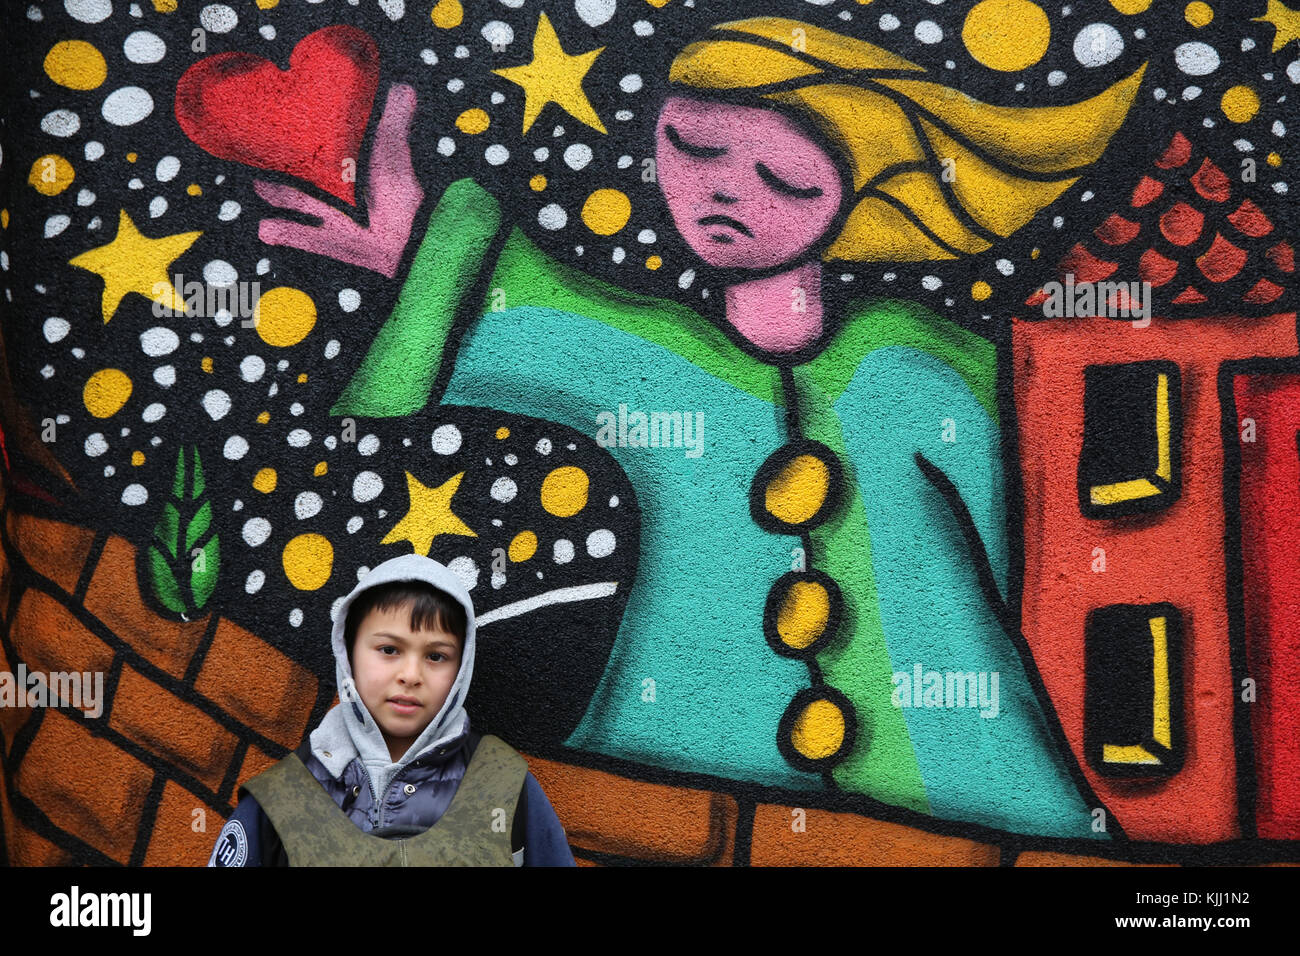 Boy standing by wall art. France. - Stock Image